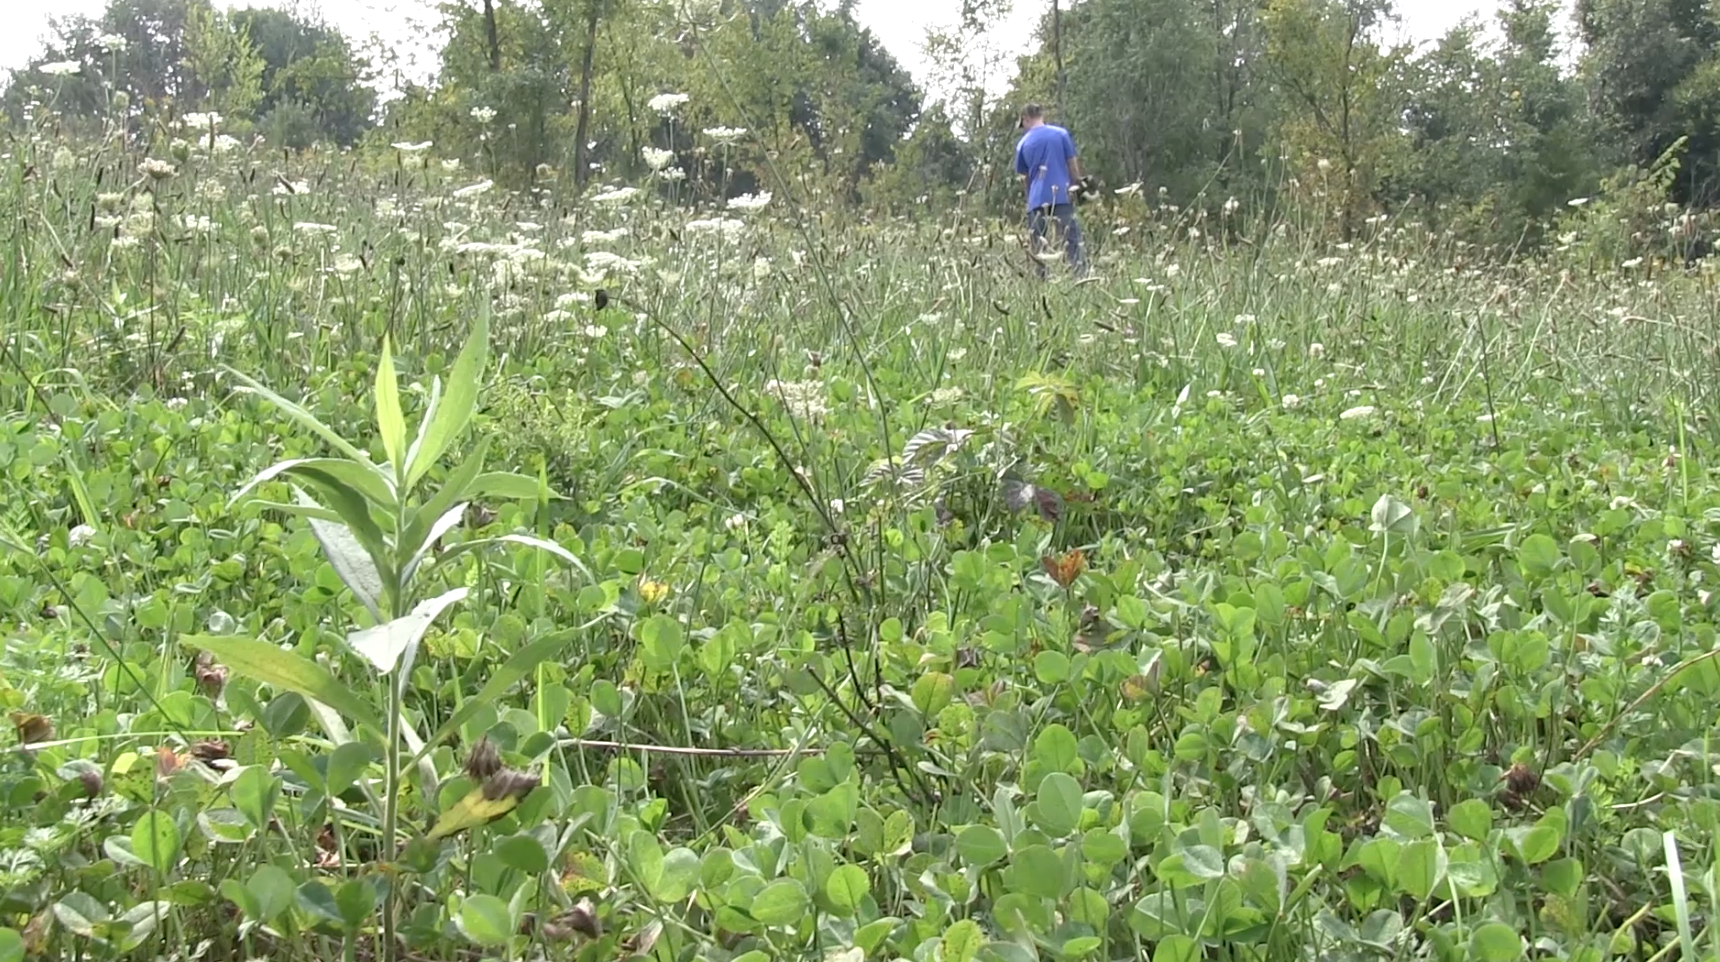 The Magic Food Plot Seed: Why You Should Plant Clover